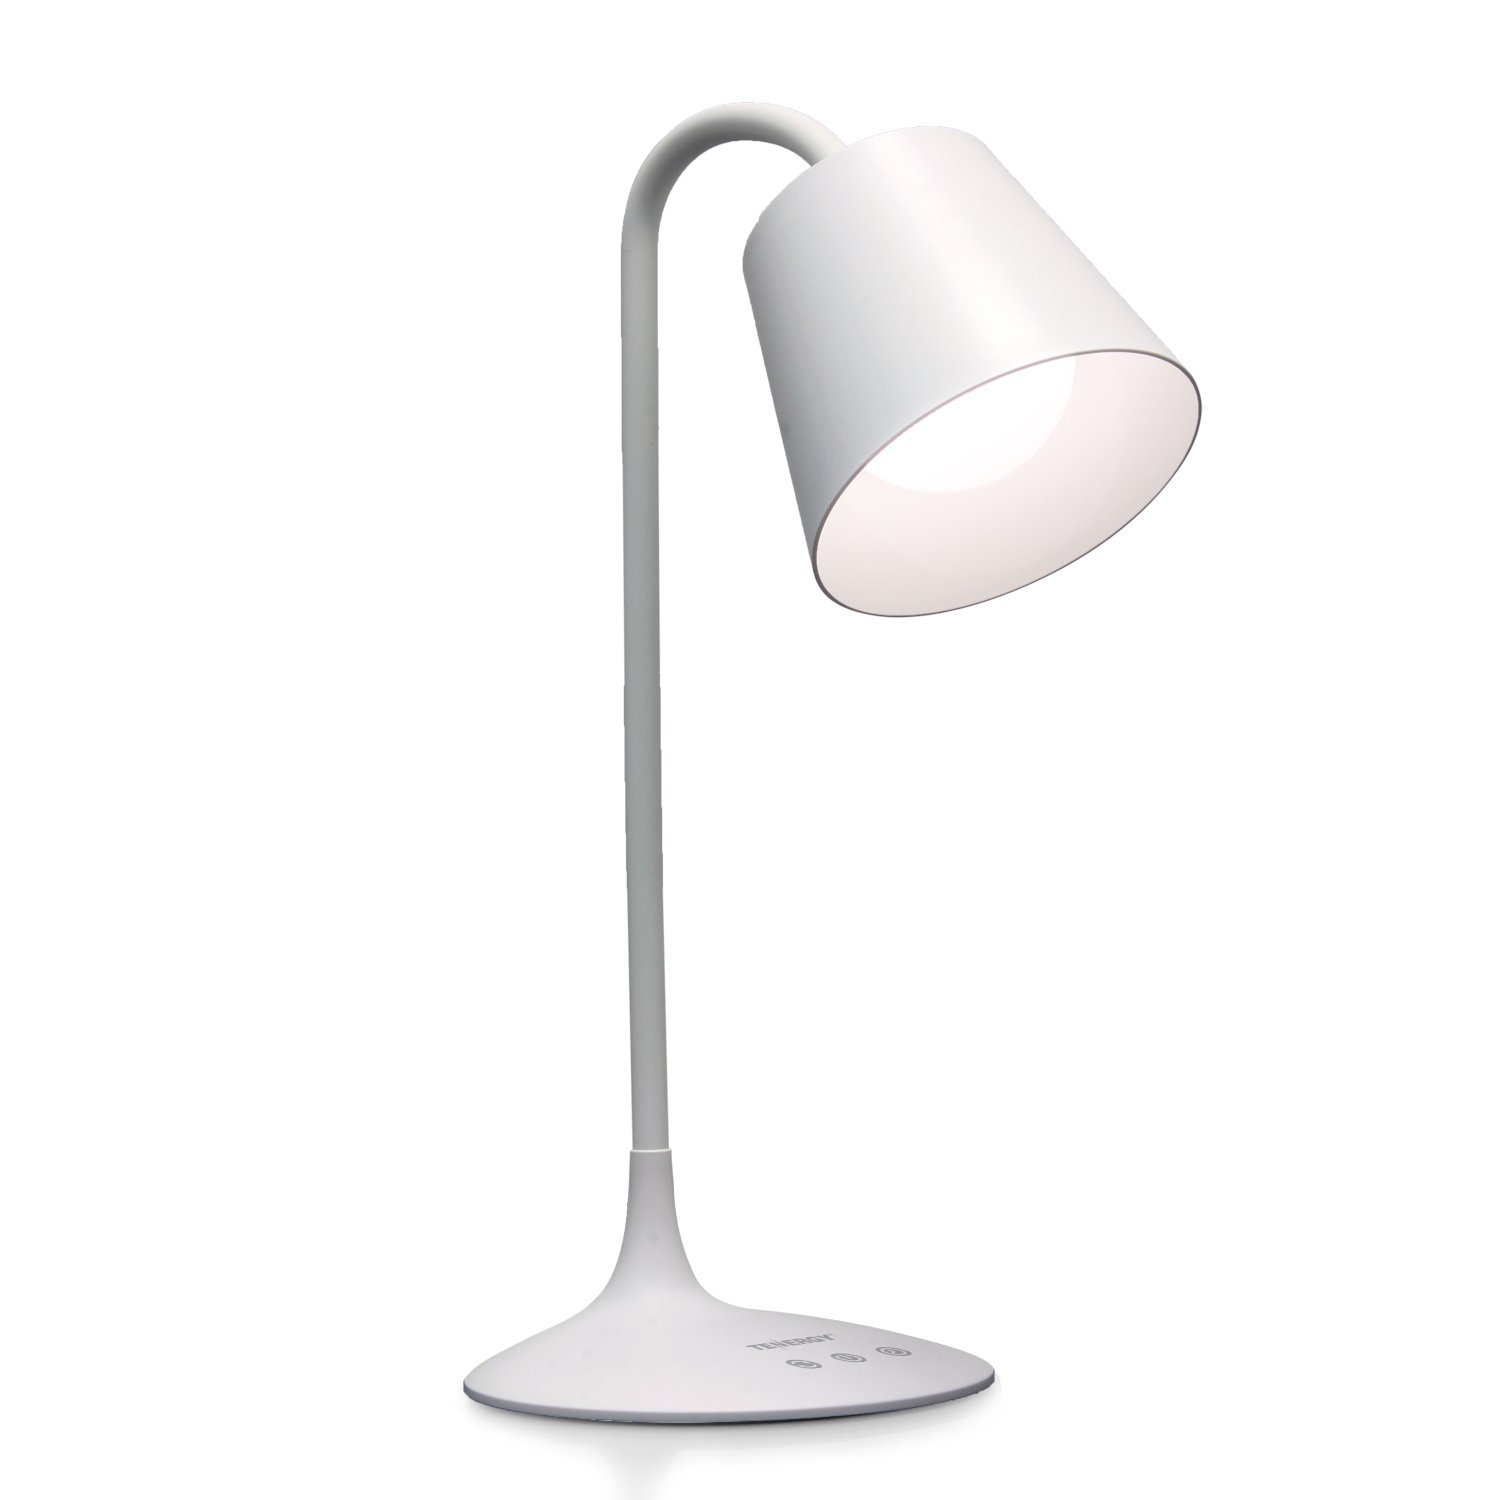 Tenergy tenergy classic rechargeable led desk lamp with 3 preset tenergy classic rechargeable led desk lamp with 3 preset light colors 40 minute auto aloadofball Choice Image